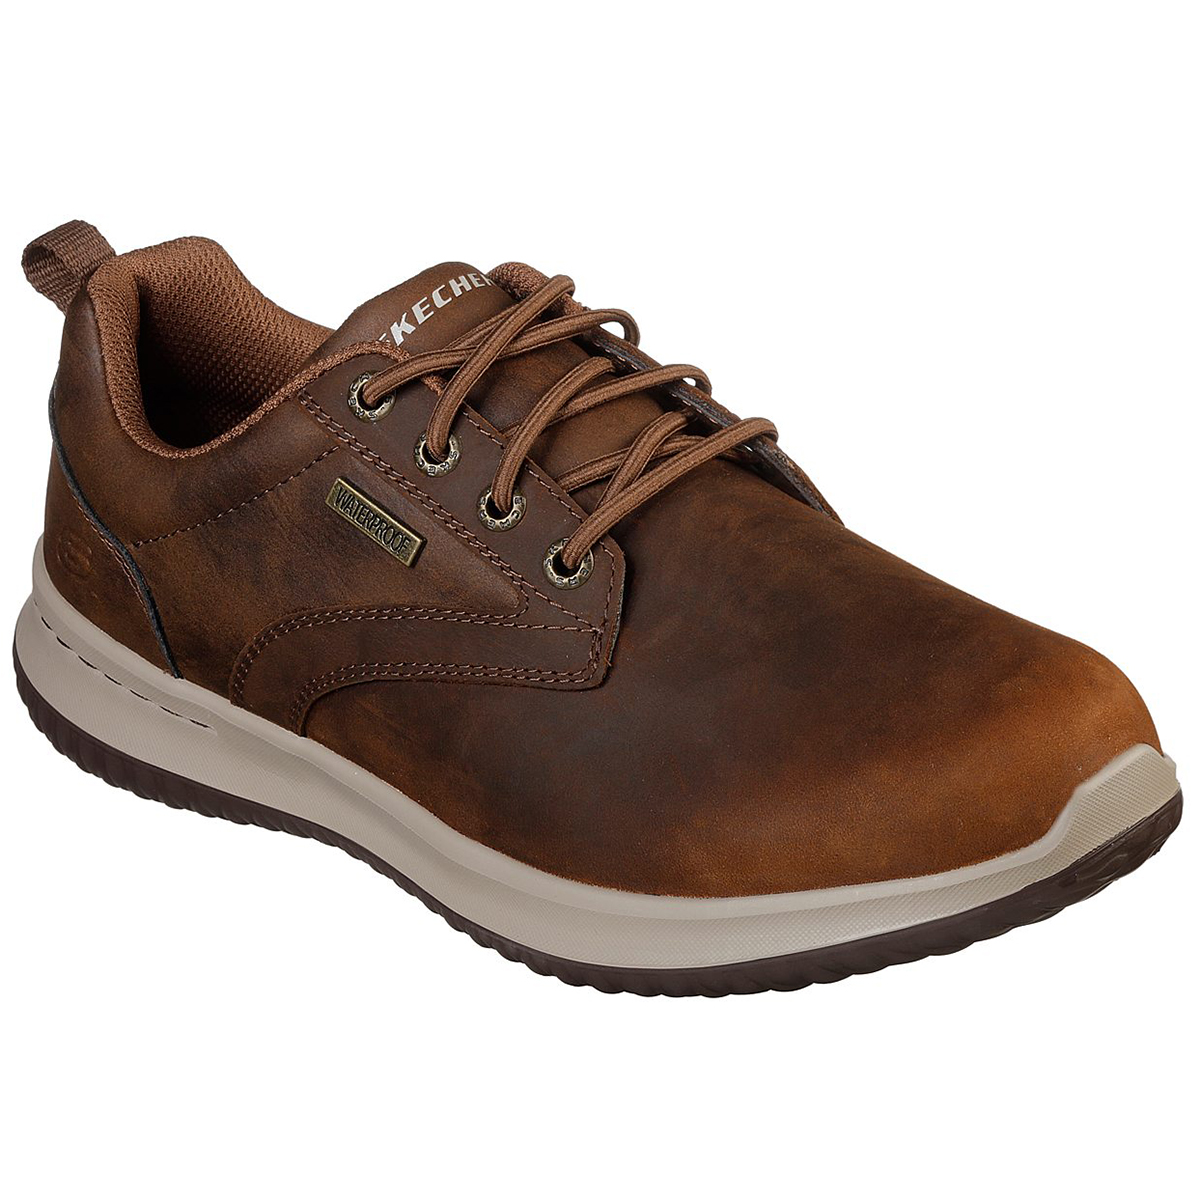 Skechers Men's Delson Antigo Waterproof Leather Slip On Shoes With Bungee Lace - Brown, 9